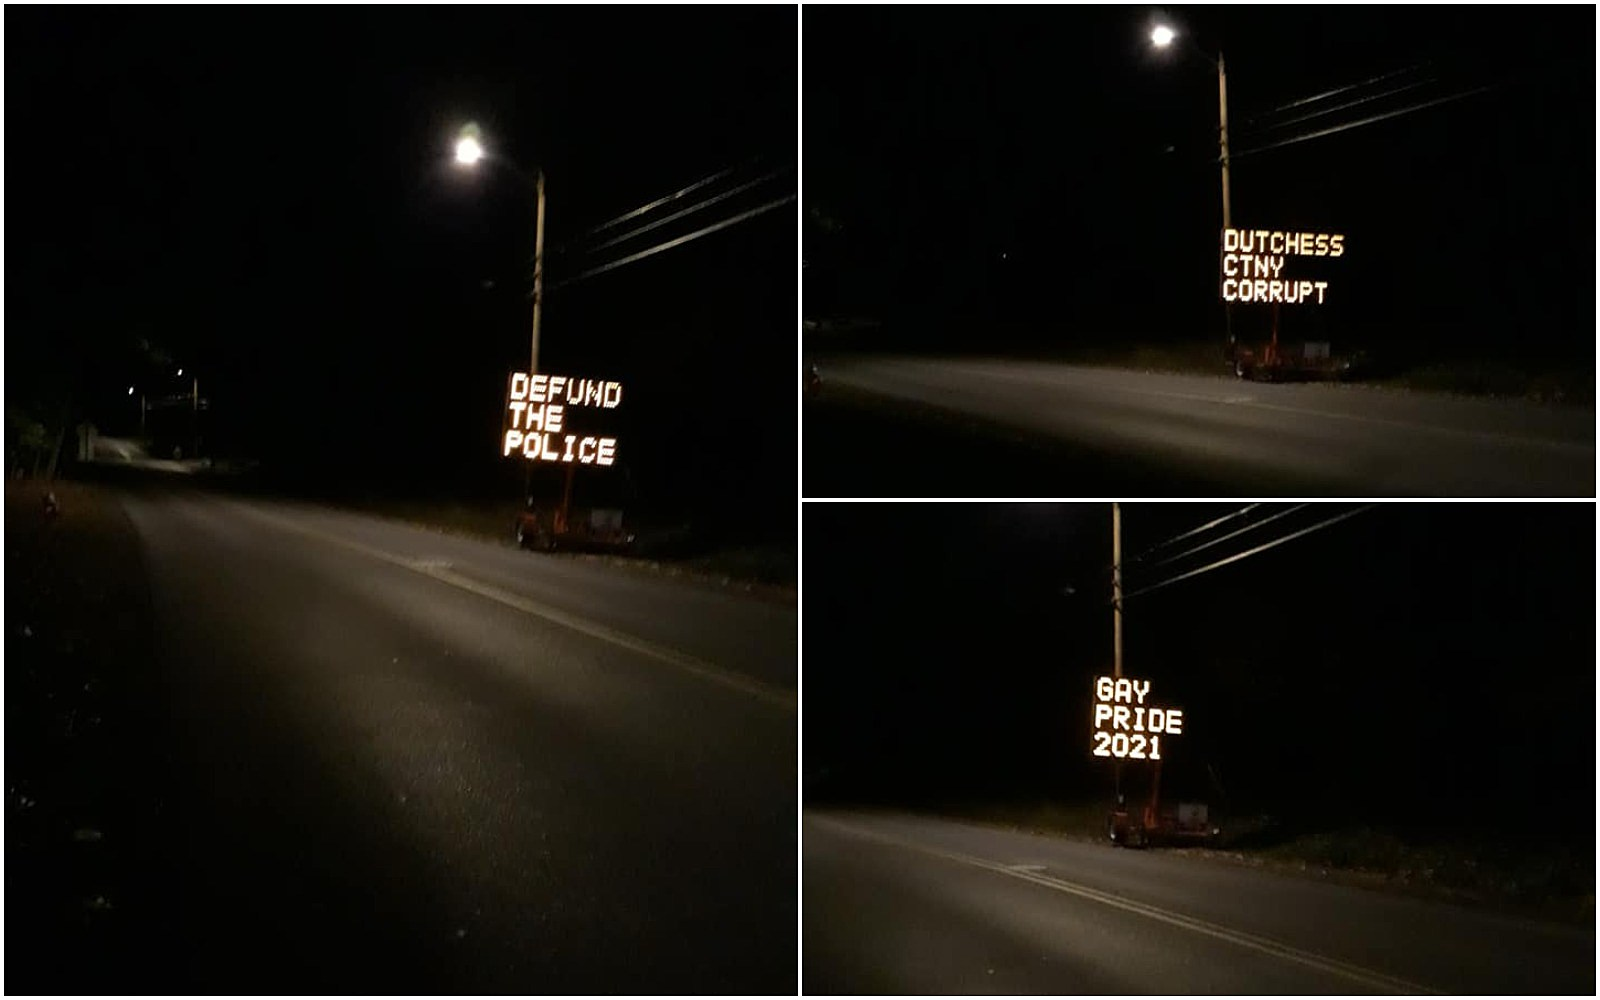 Construction Sign Hacked Again In Hudson Valley